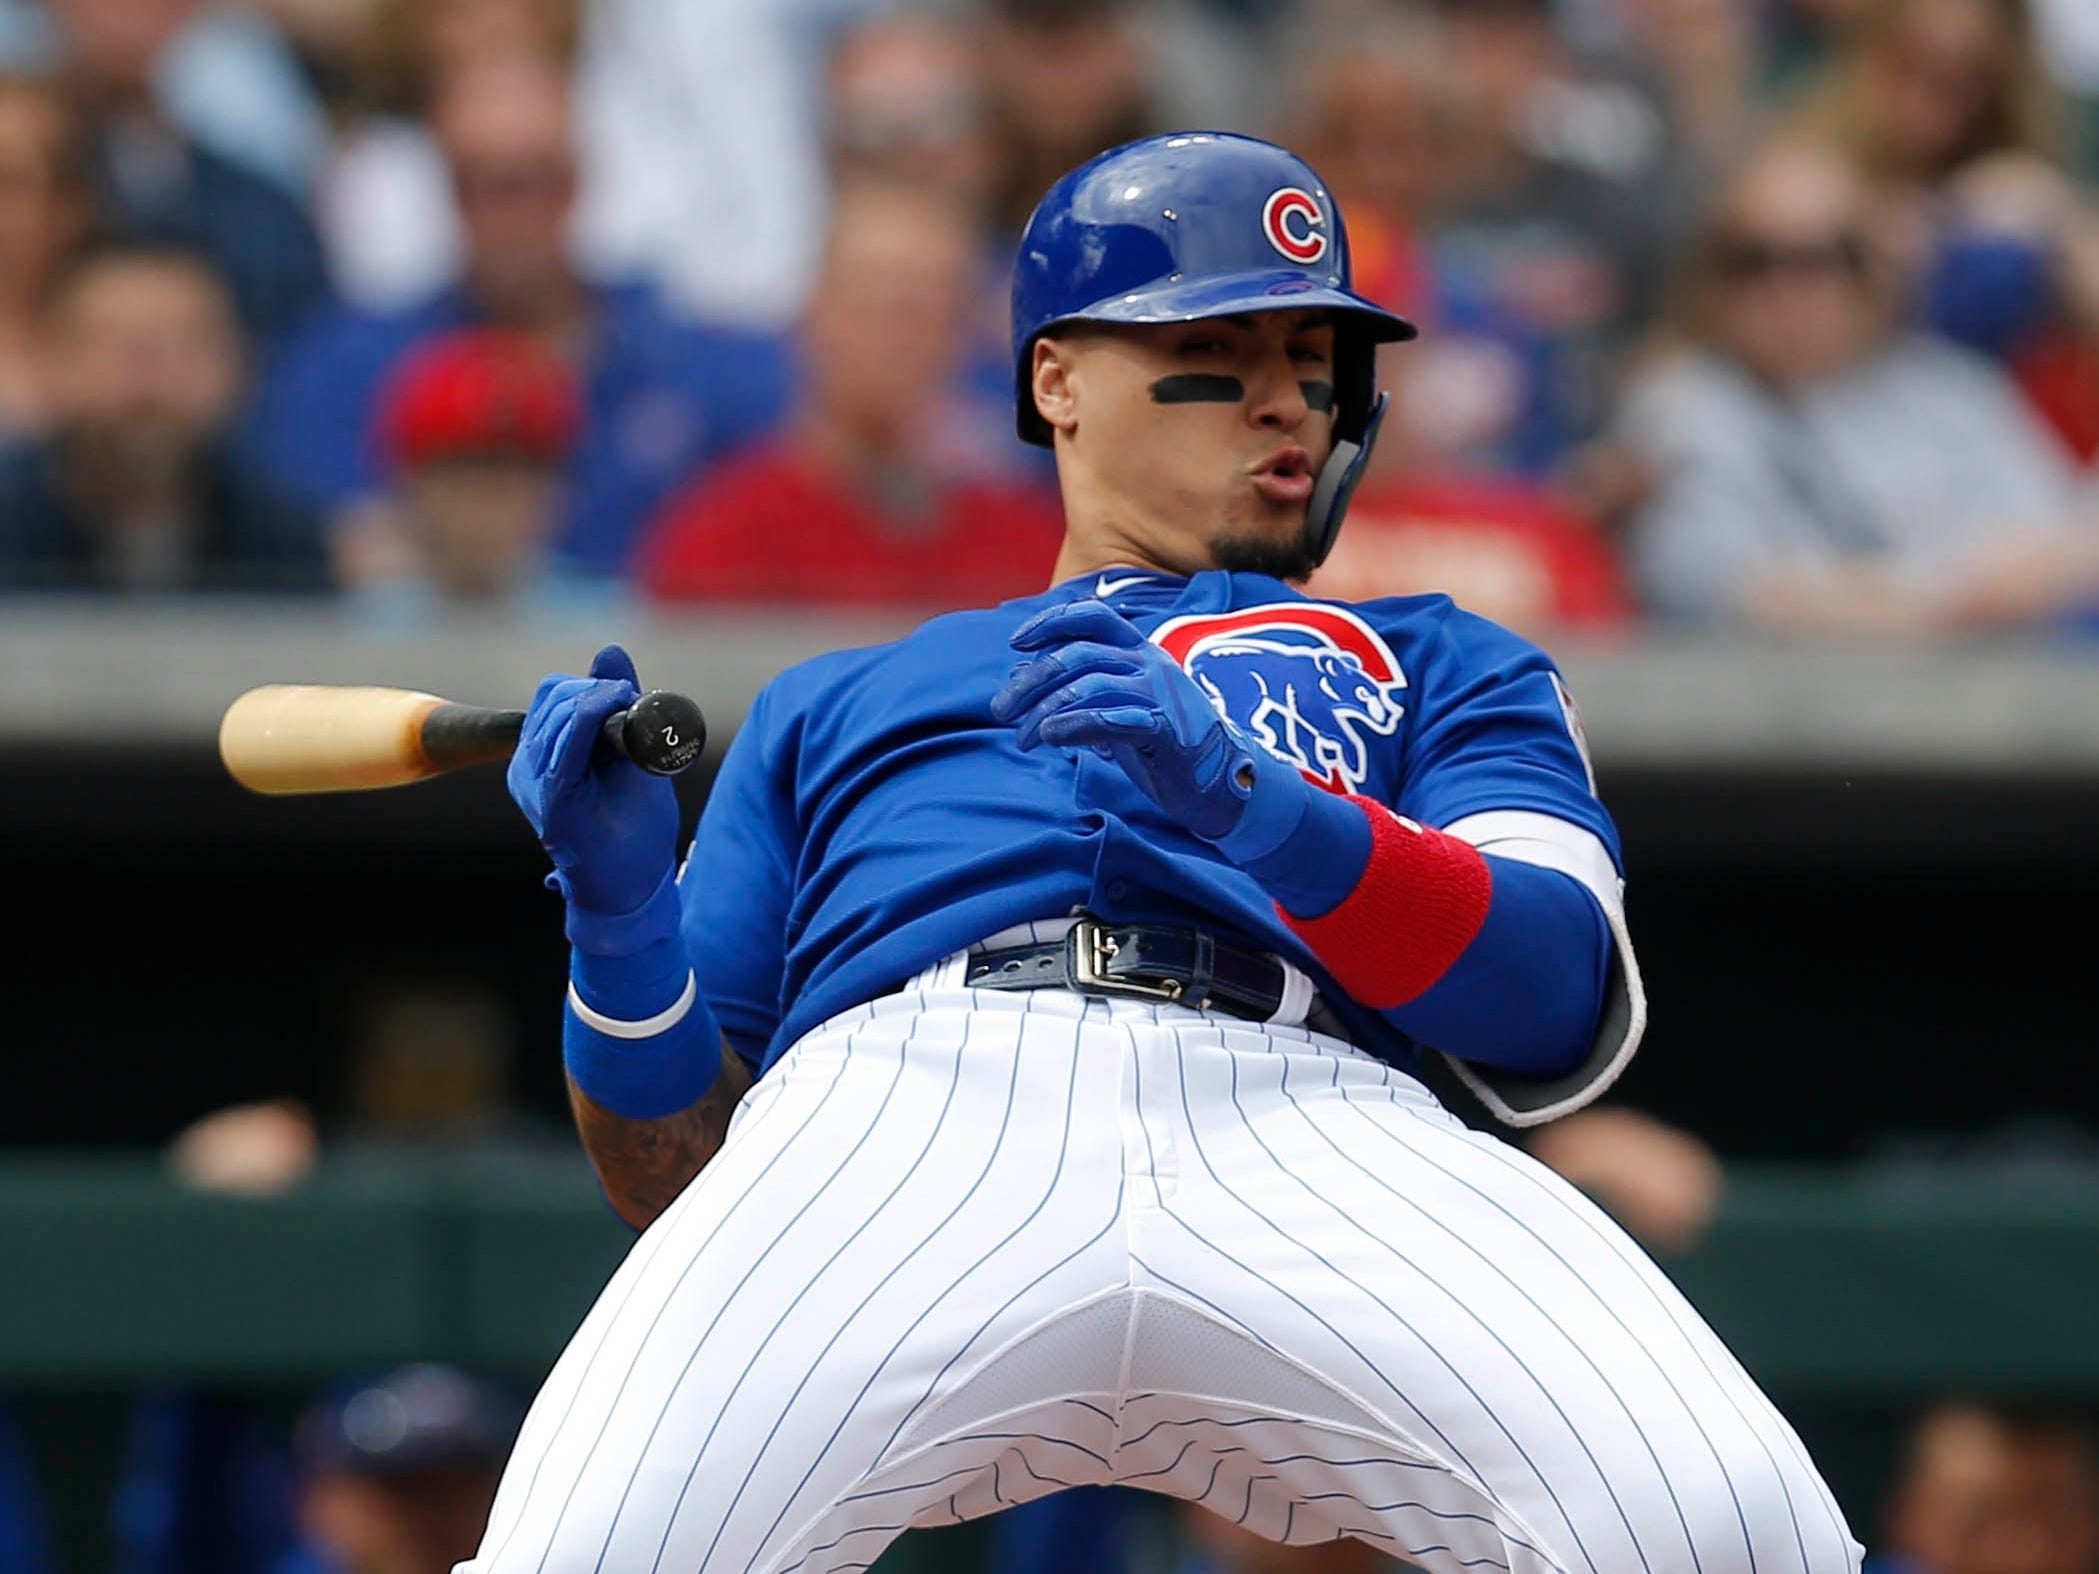 March 2: Cubs shortstop Javier Baez  reacts after almost getting hit with a pitch.